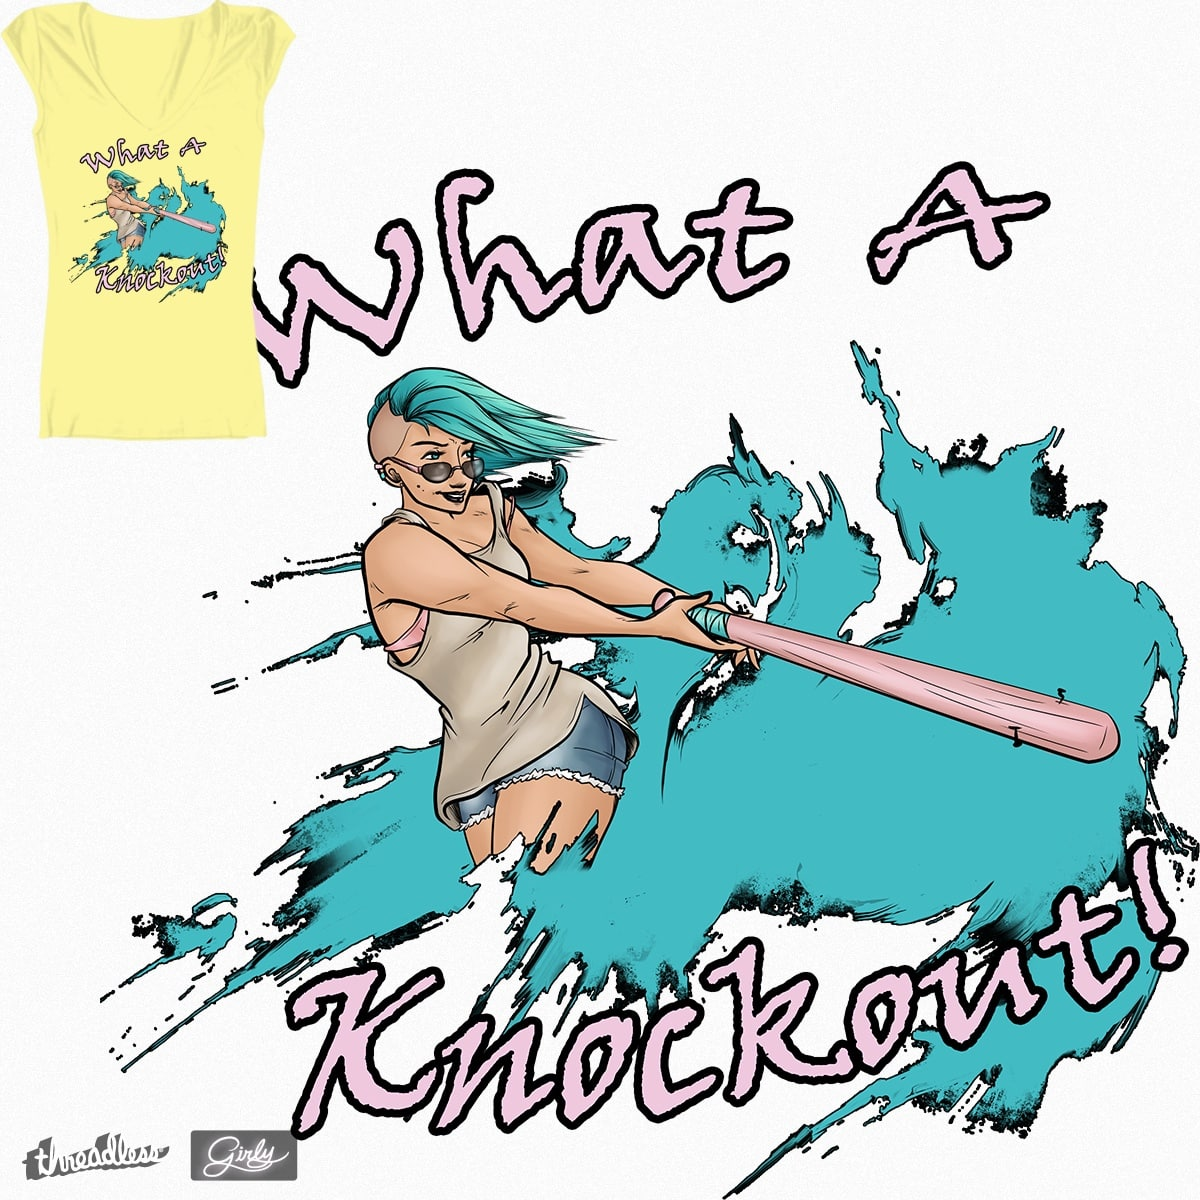 Knockout! by JillianWahl on Threadless